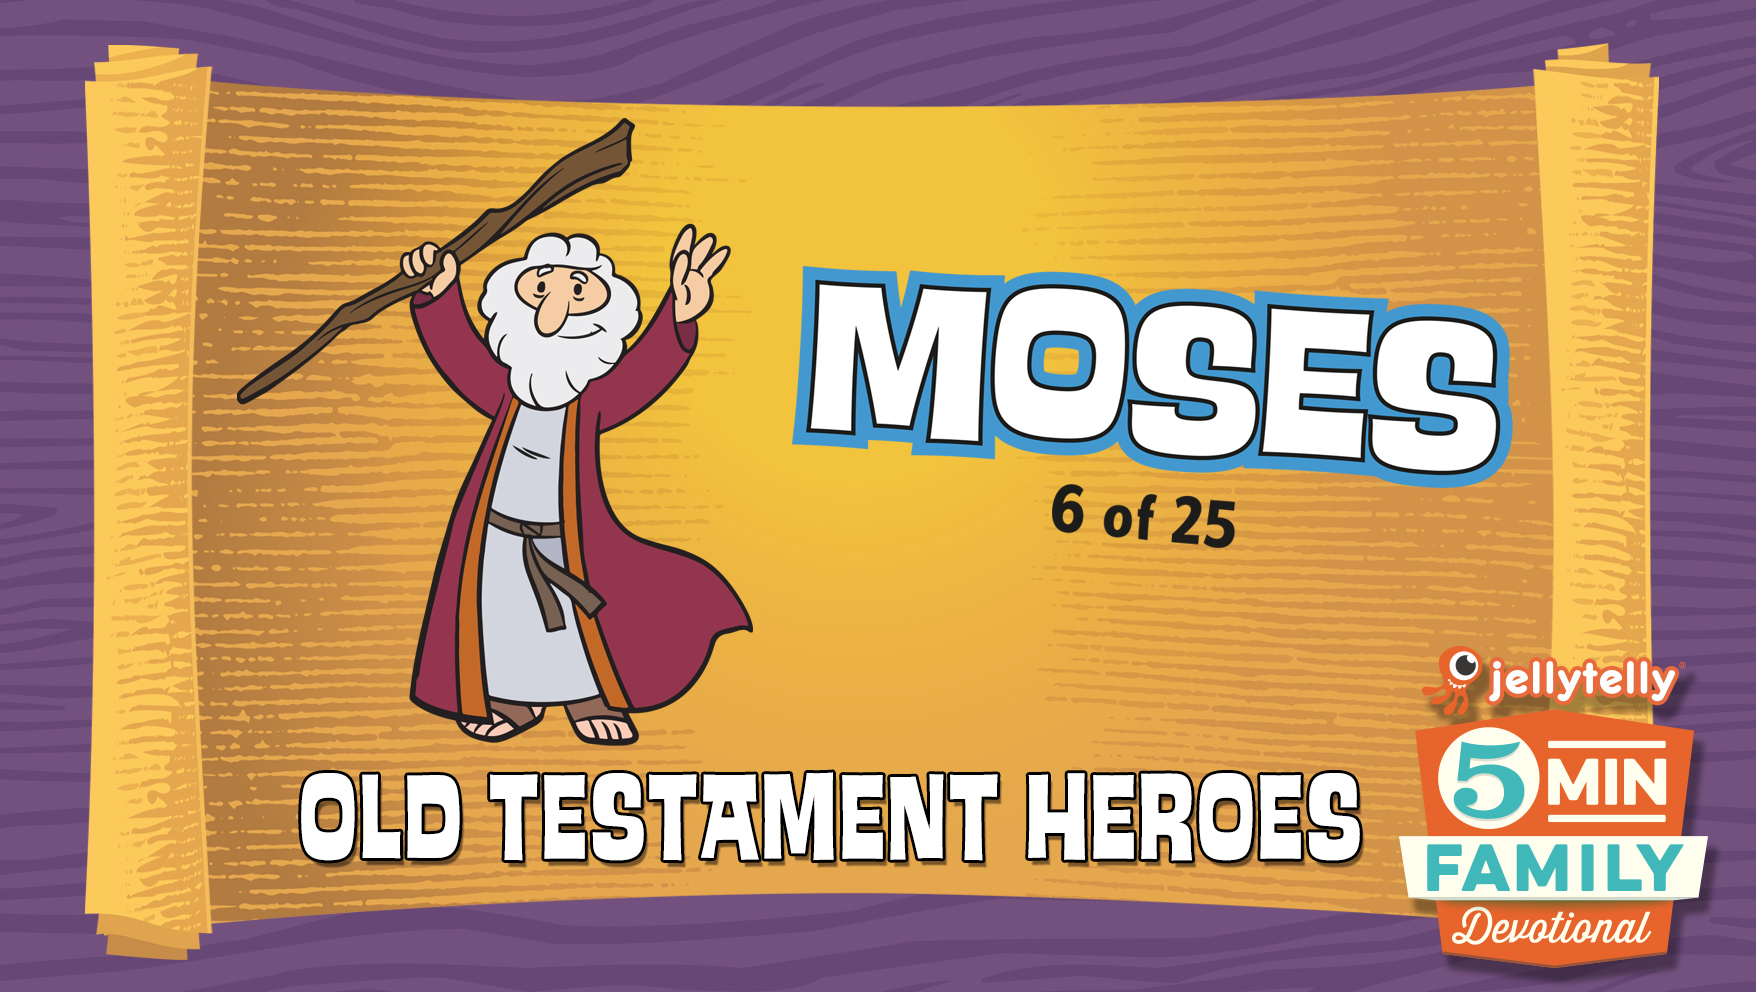 Moses: Old Testament Heroes - 5 Minute Family Devotional